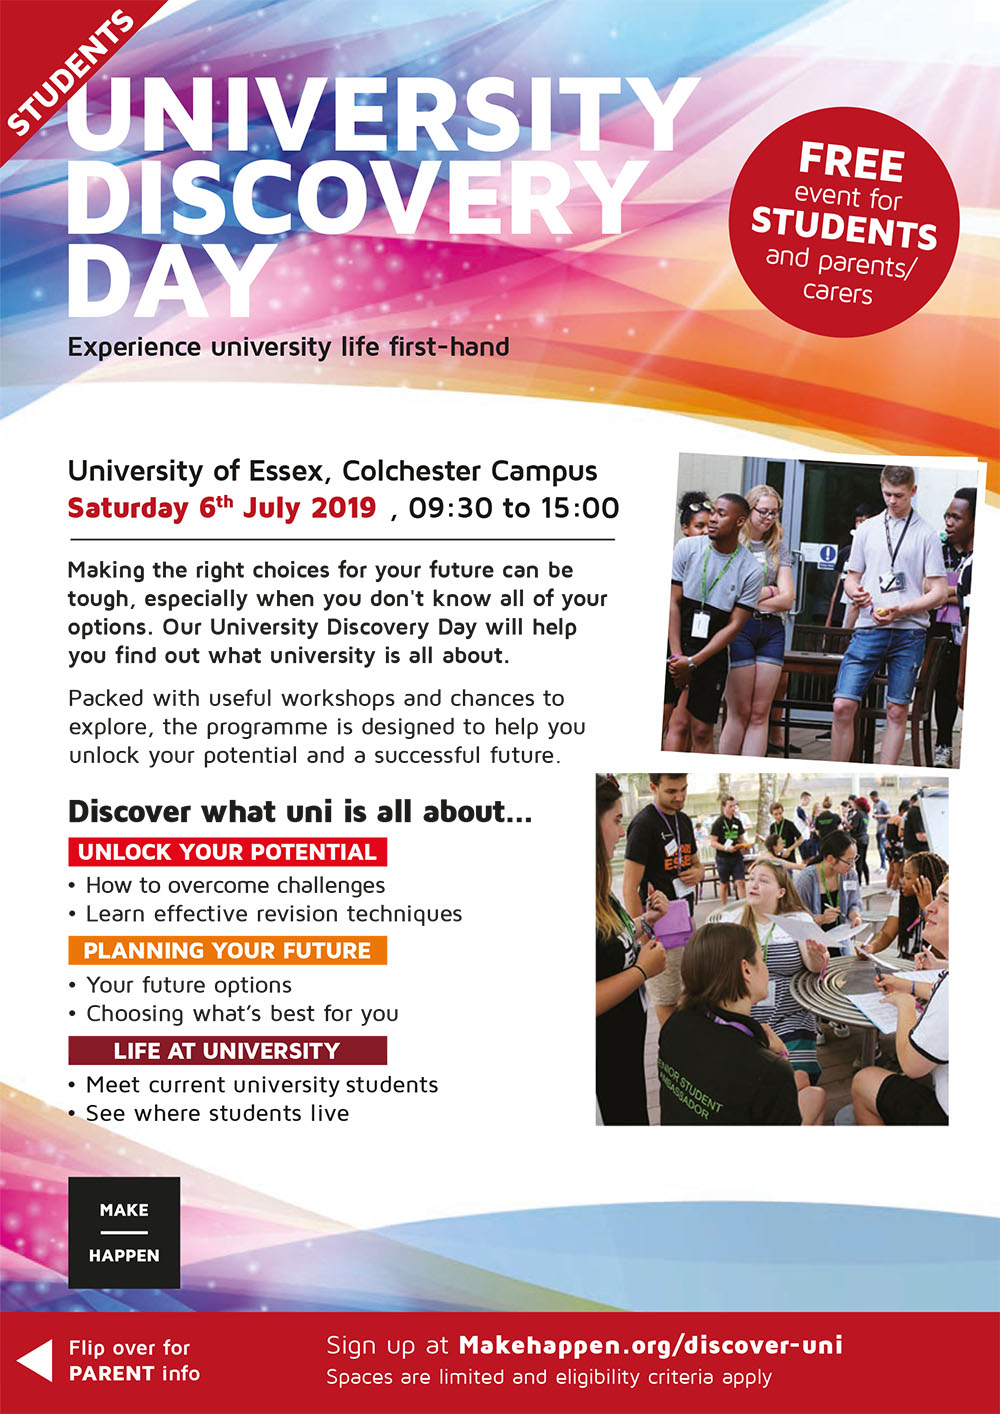 University Discovery Day